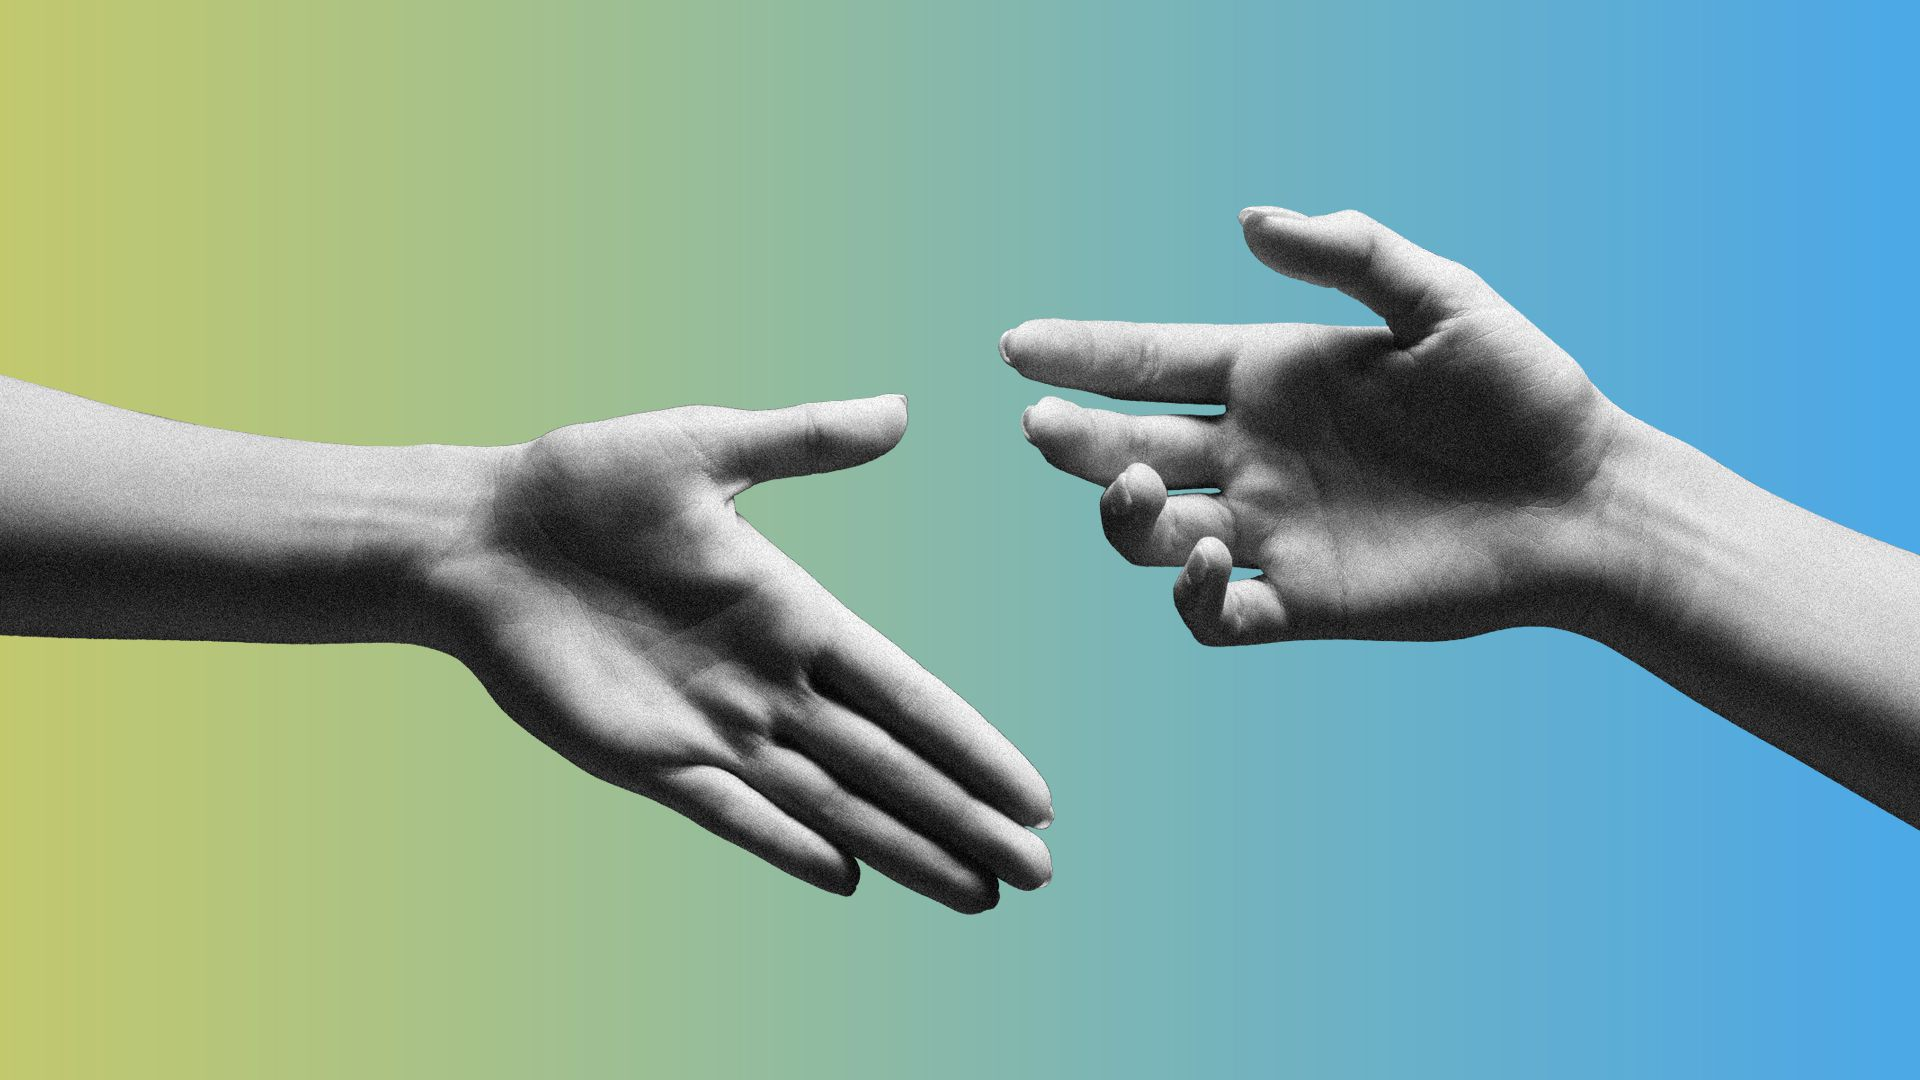 Illustration of two hands reaching out but not completing a handshake